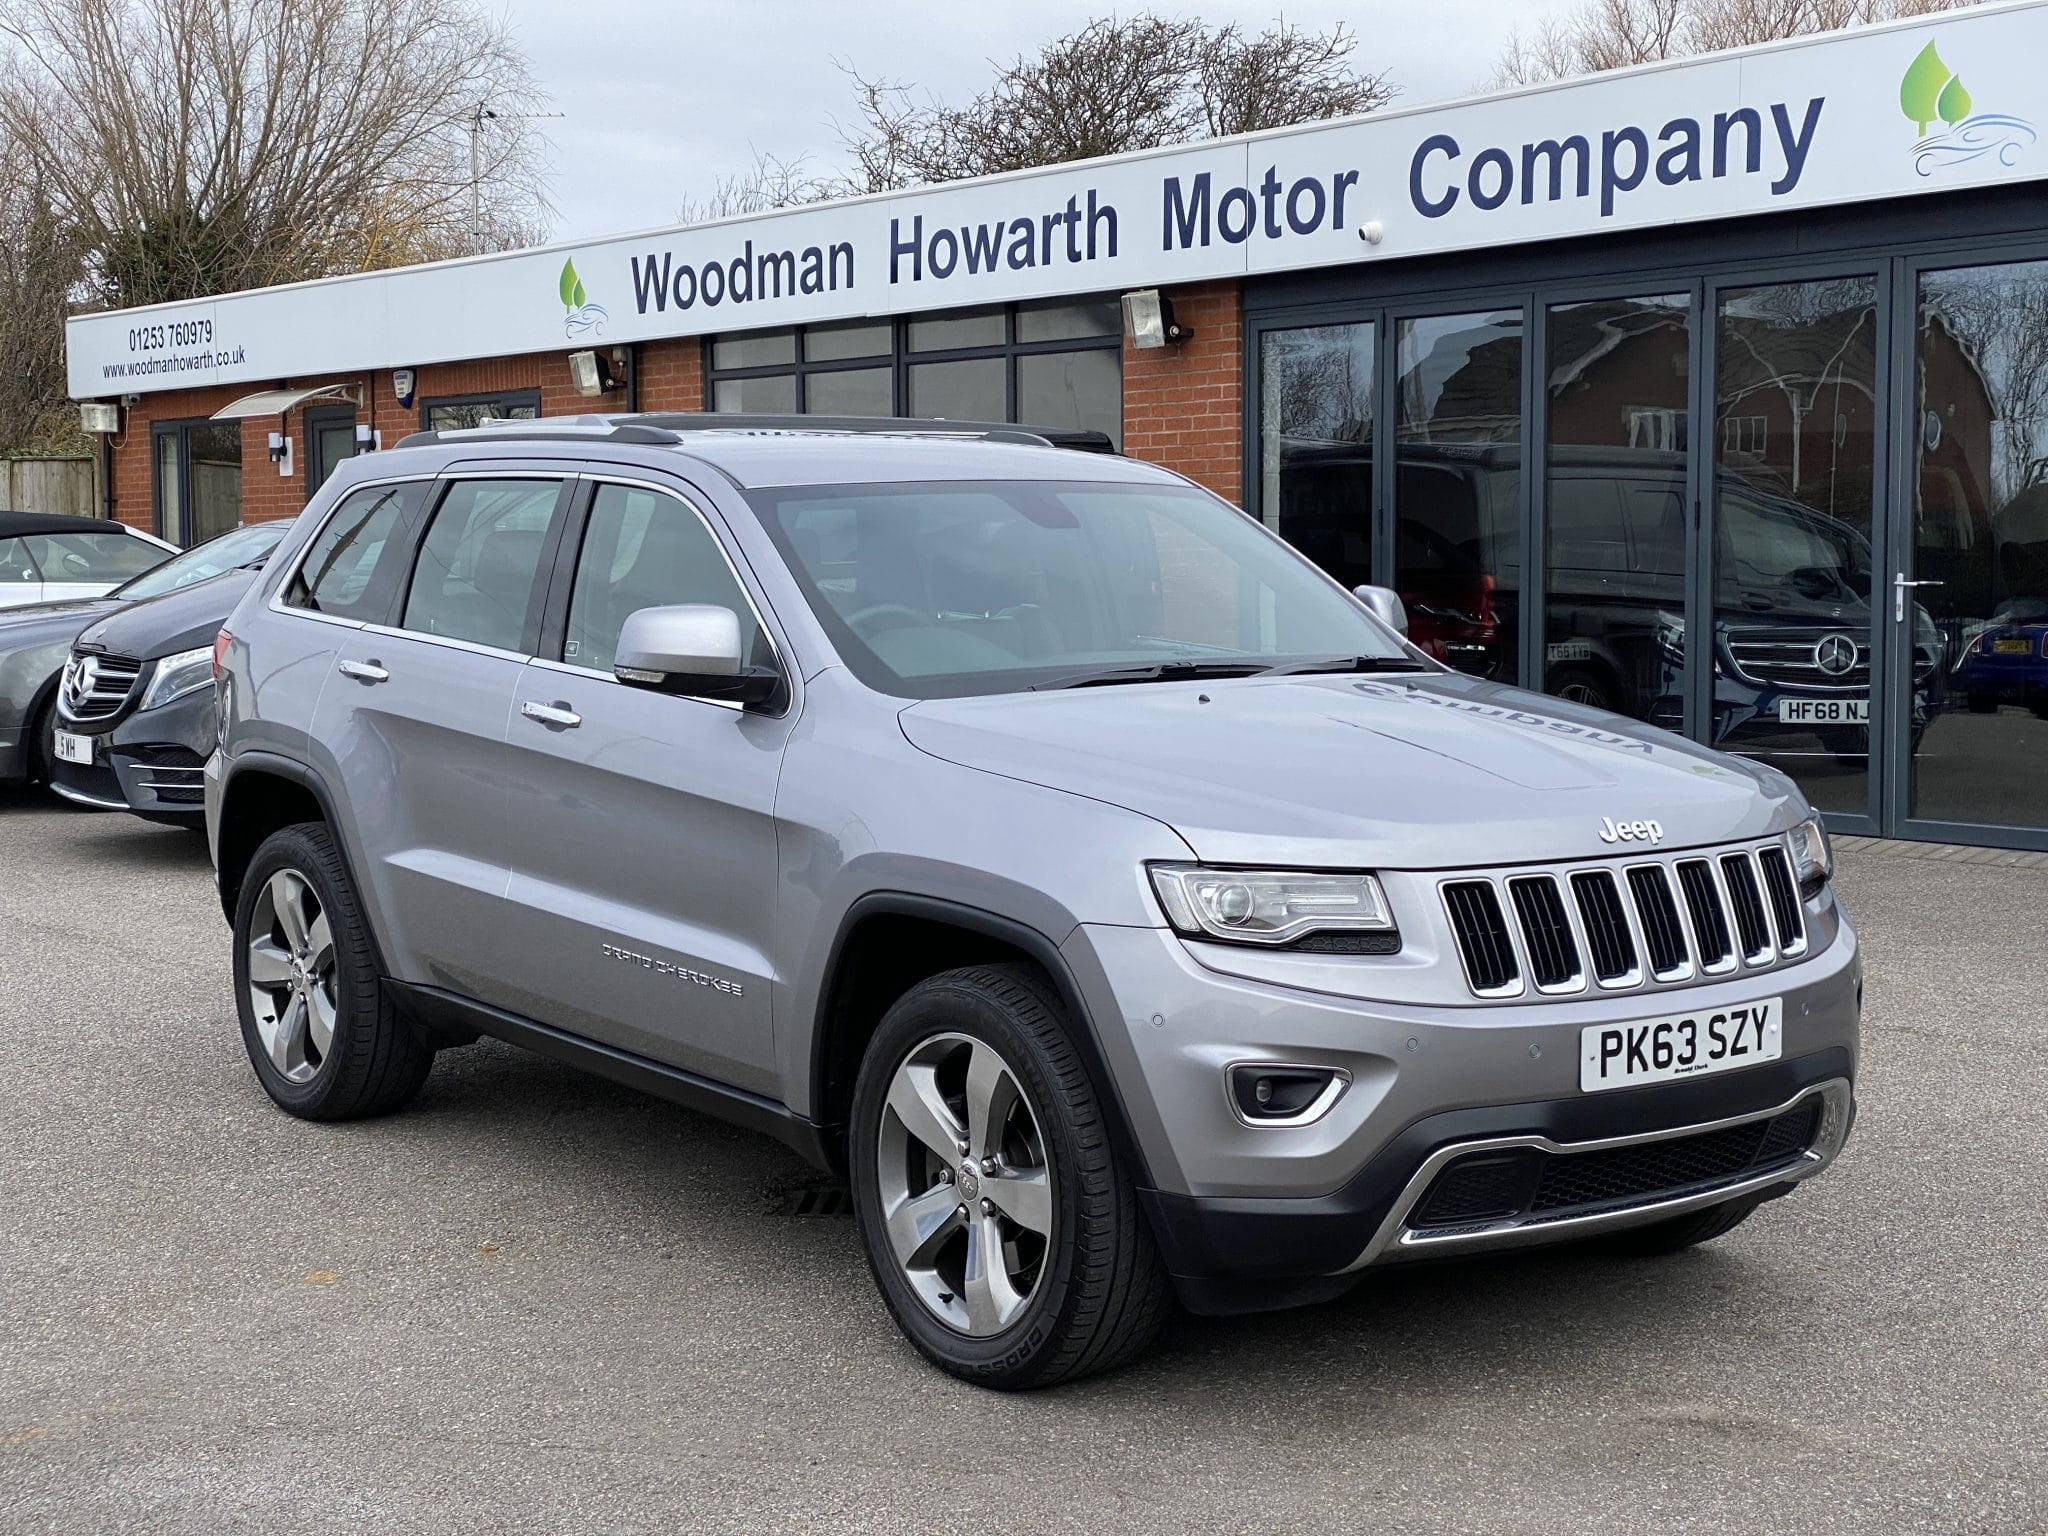 2013 63 JEEP GRAND CHEROKEE LIMITED PLUS 3.0 CRD AUTO 4X4 247 BHP ONE OWNER ONLY 21K Mls Huge Specification Stunning